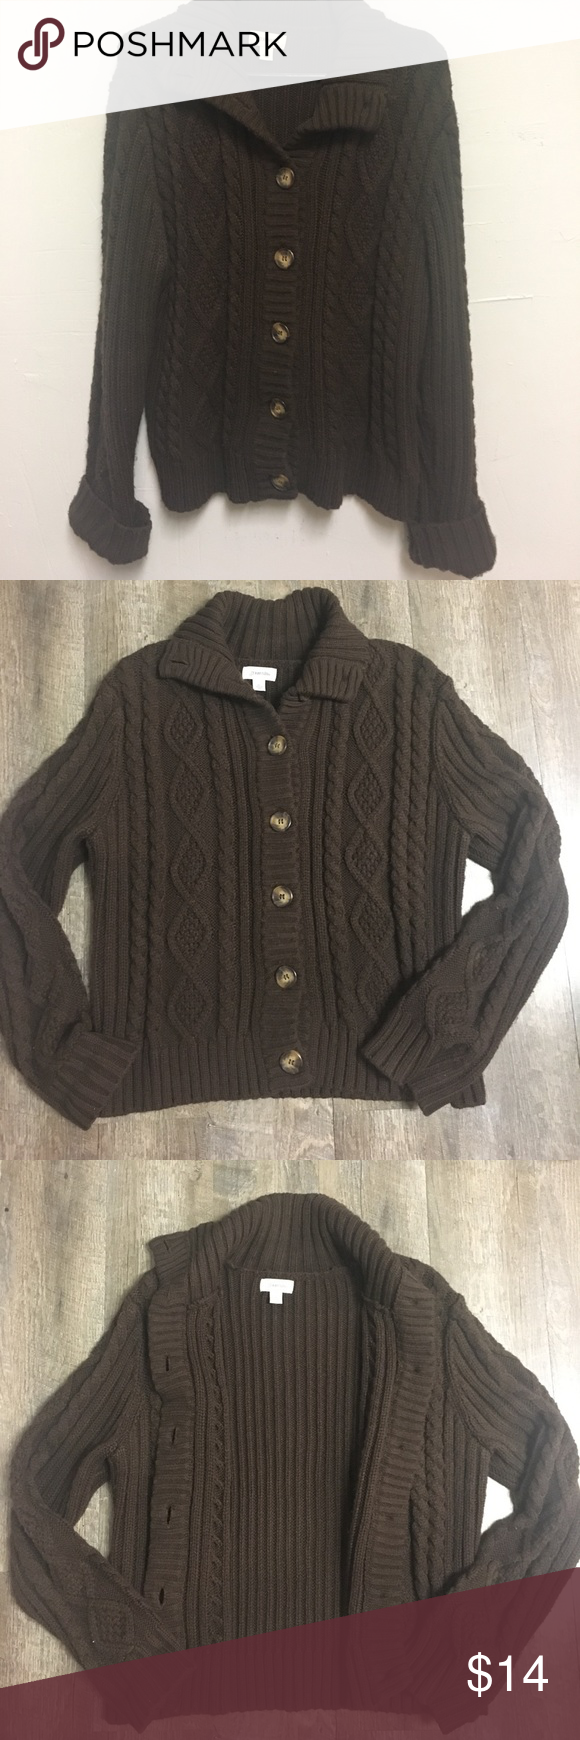 St John's Bay brown sweater | Saints, Brown and Customer support